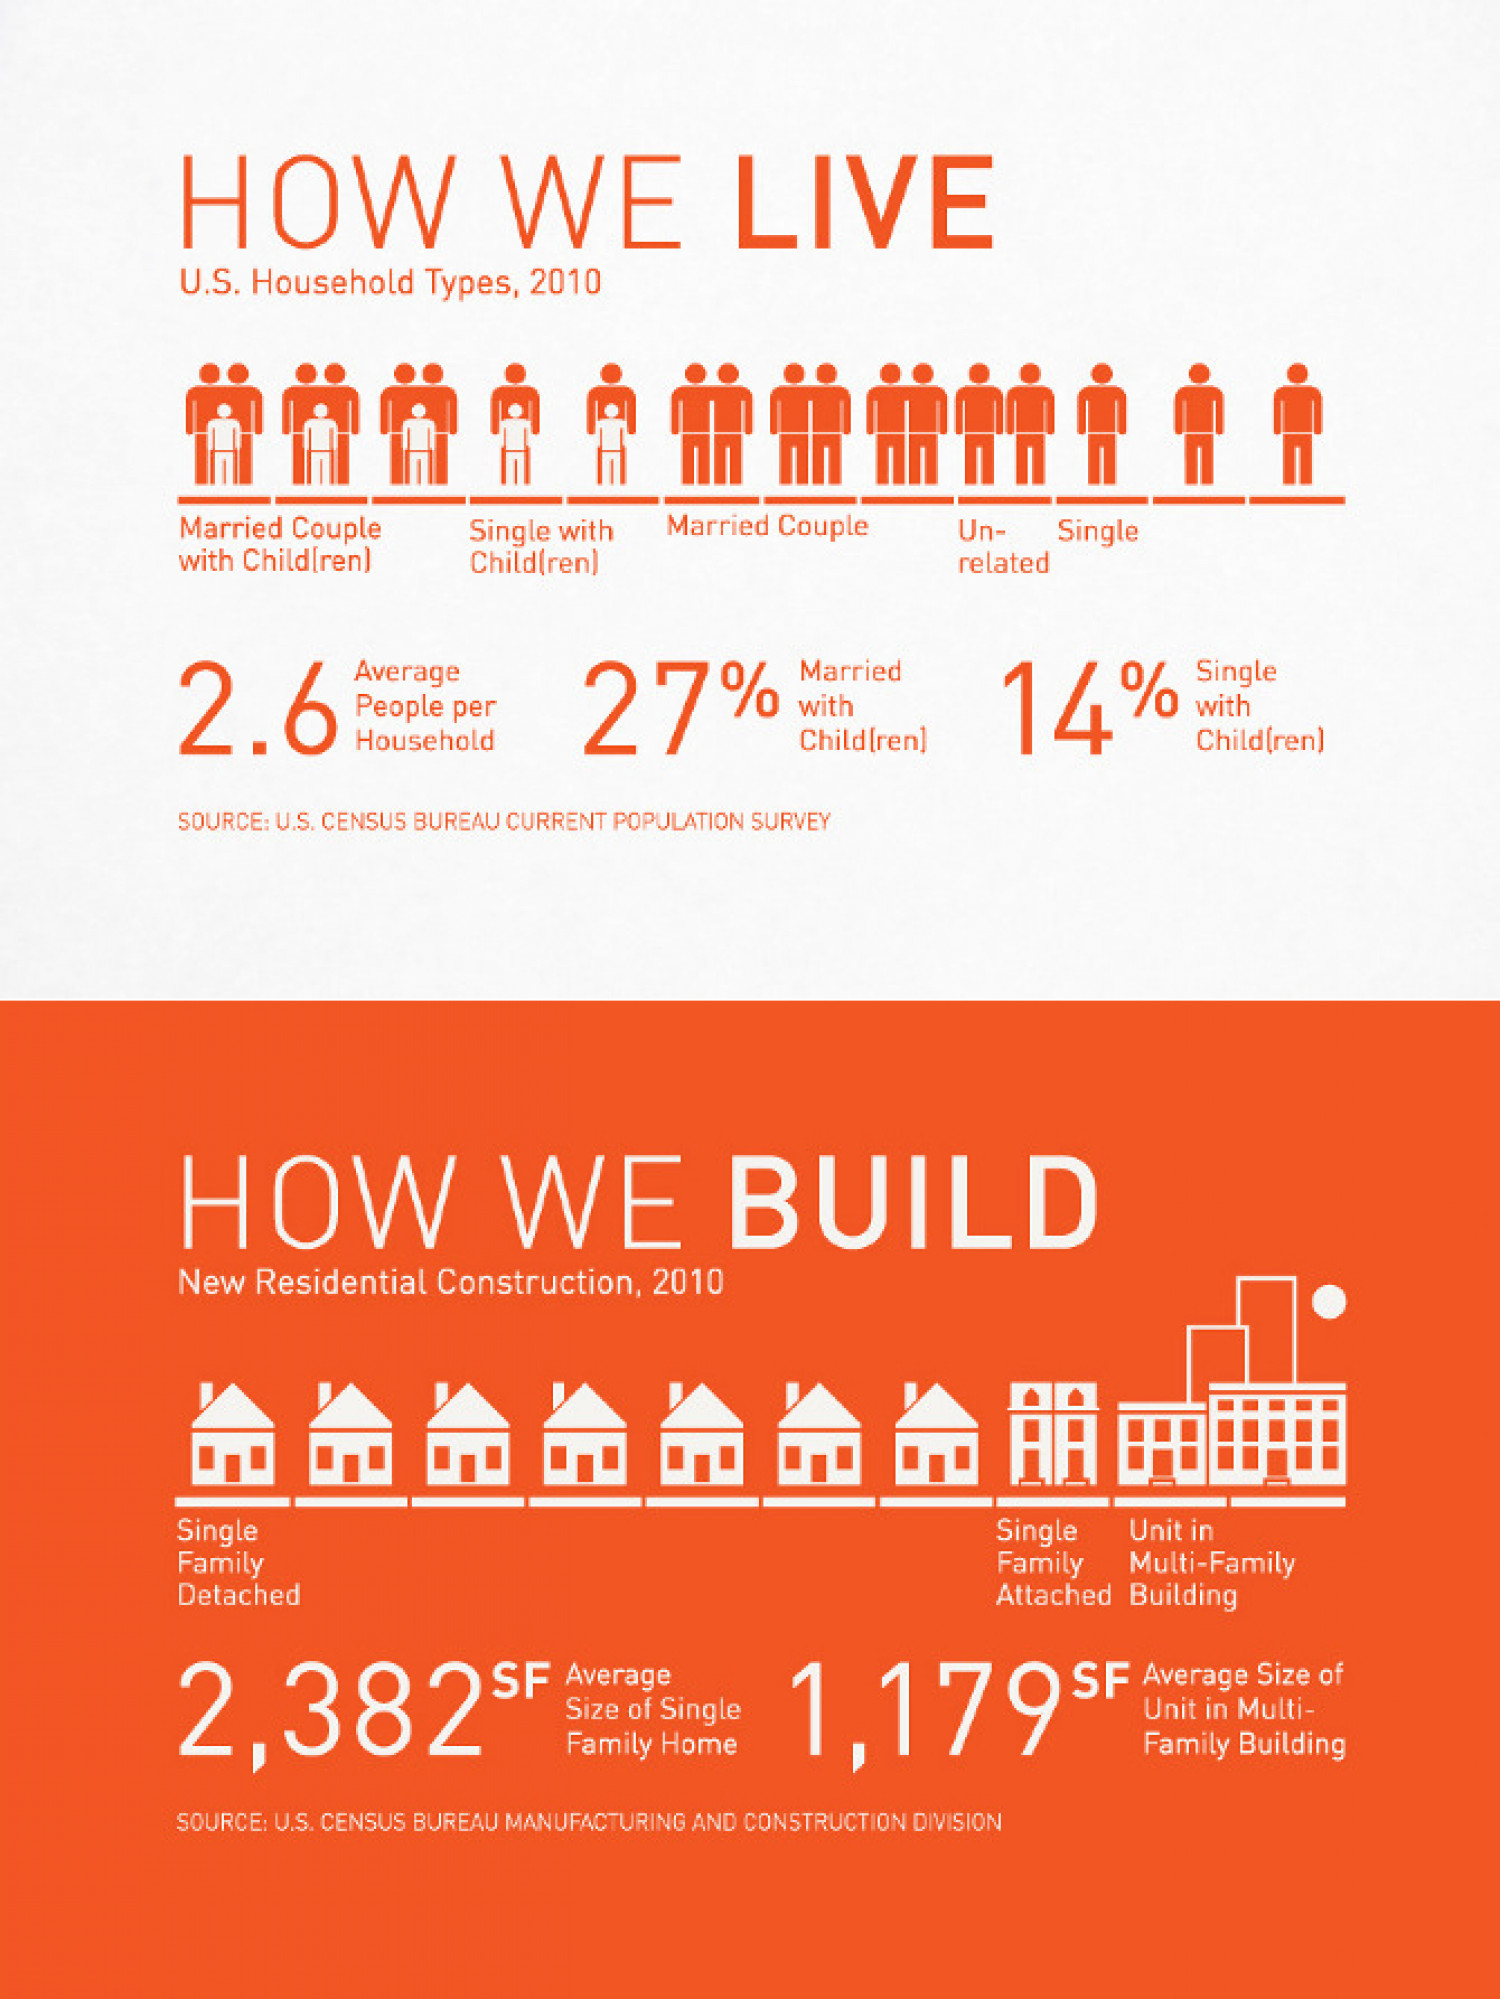 How we Live vs. How we Build Infographic